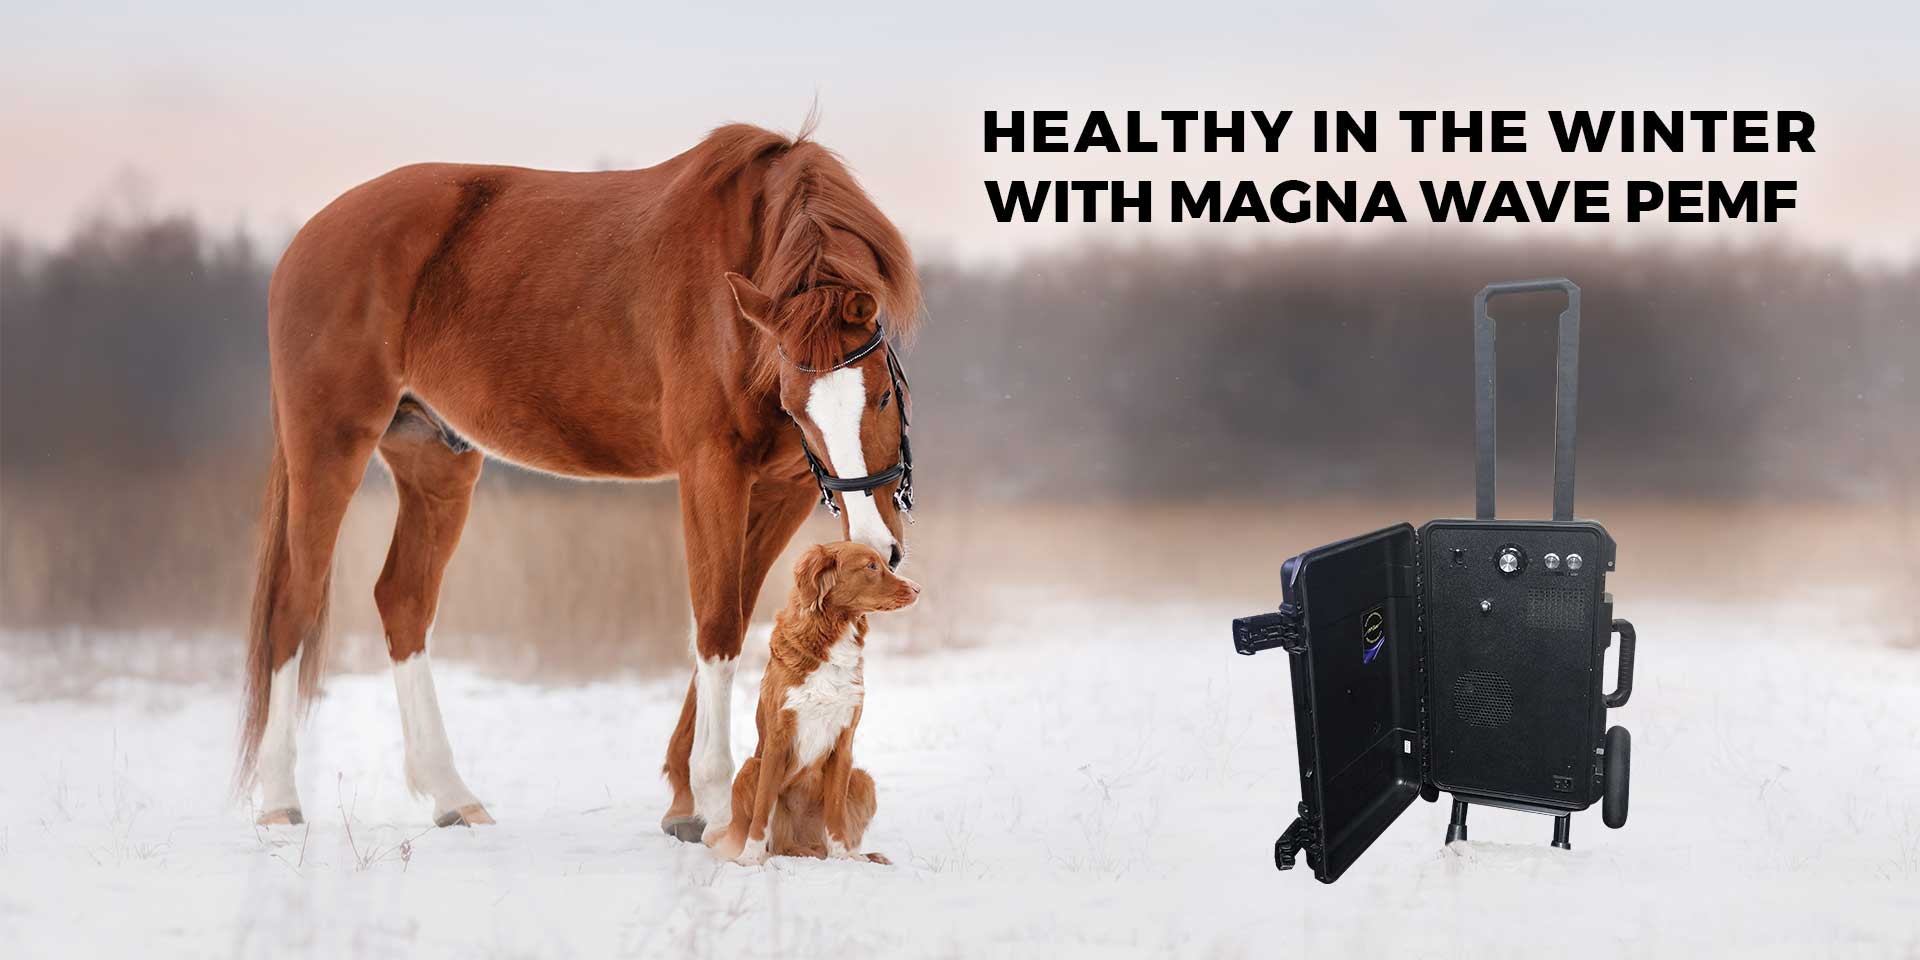 Healthy in the winter with Magna Wave PEMF